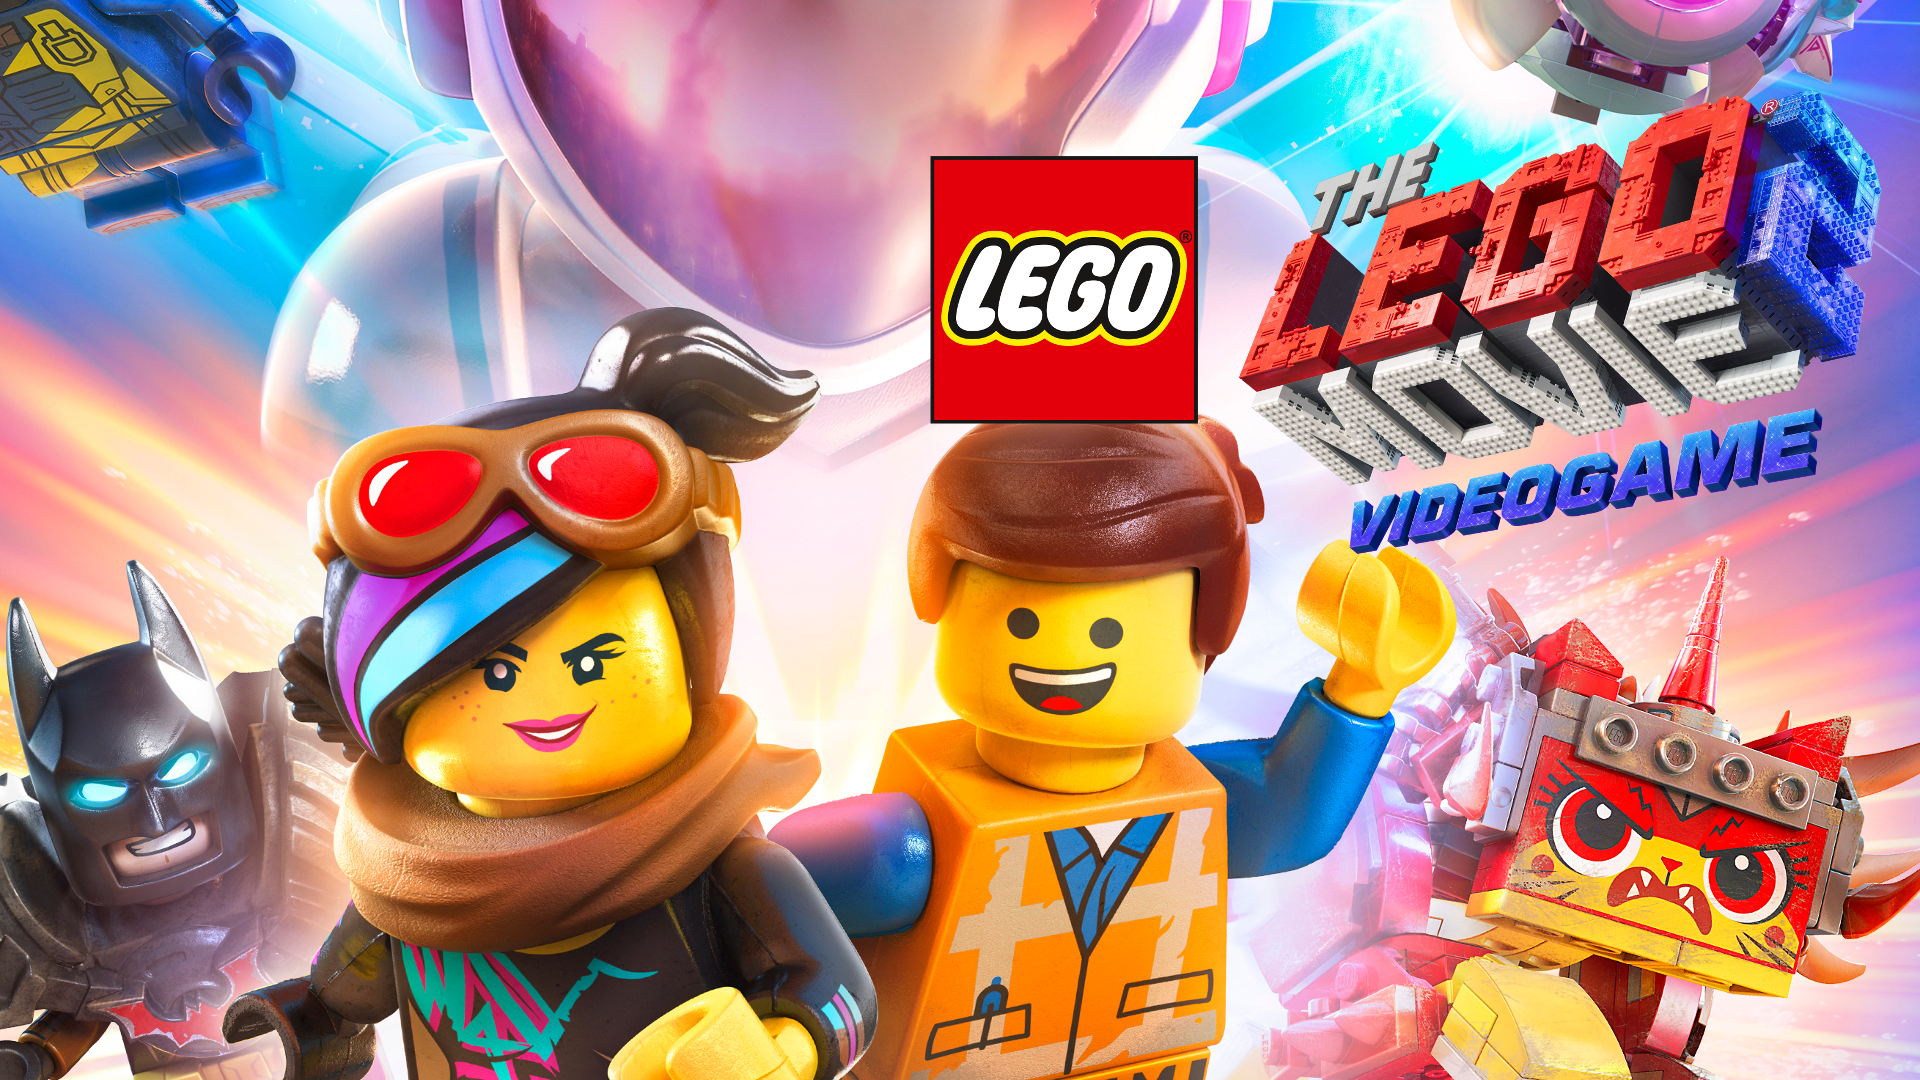 First Dlc Pack For Soon To Release The Lego Movie 2 Videogame To Bring Back Lego Movie Characters The Brick Show